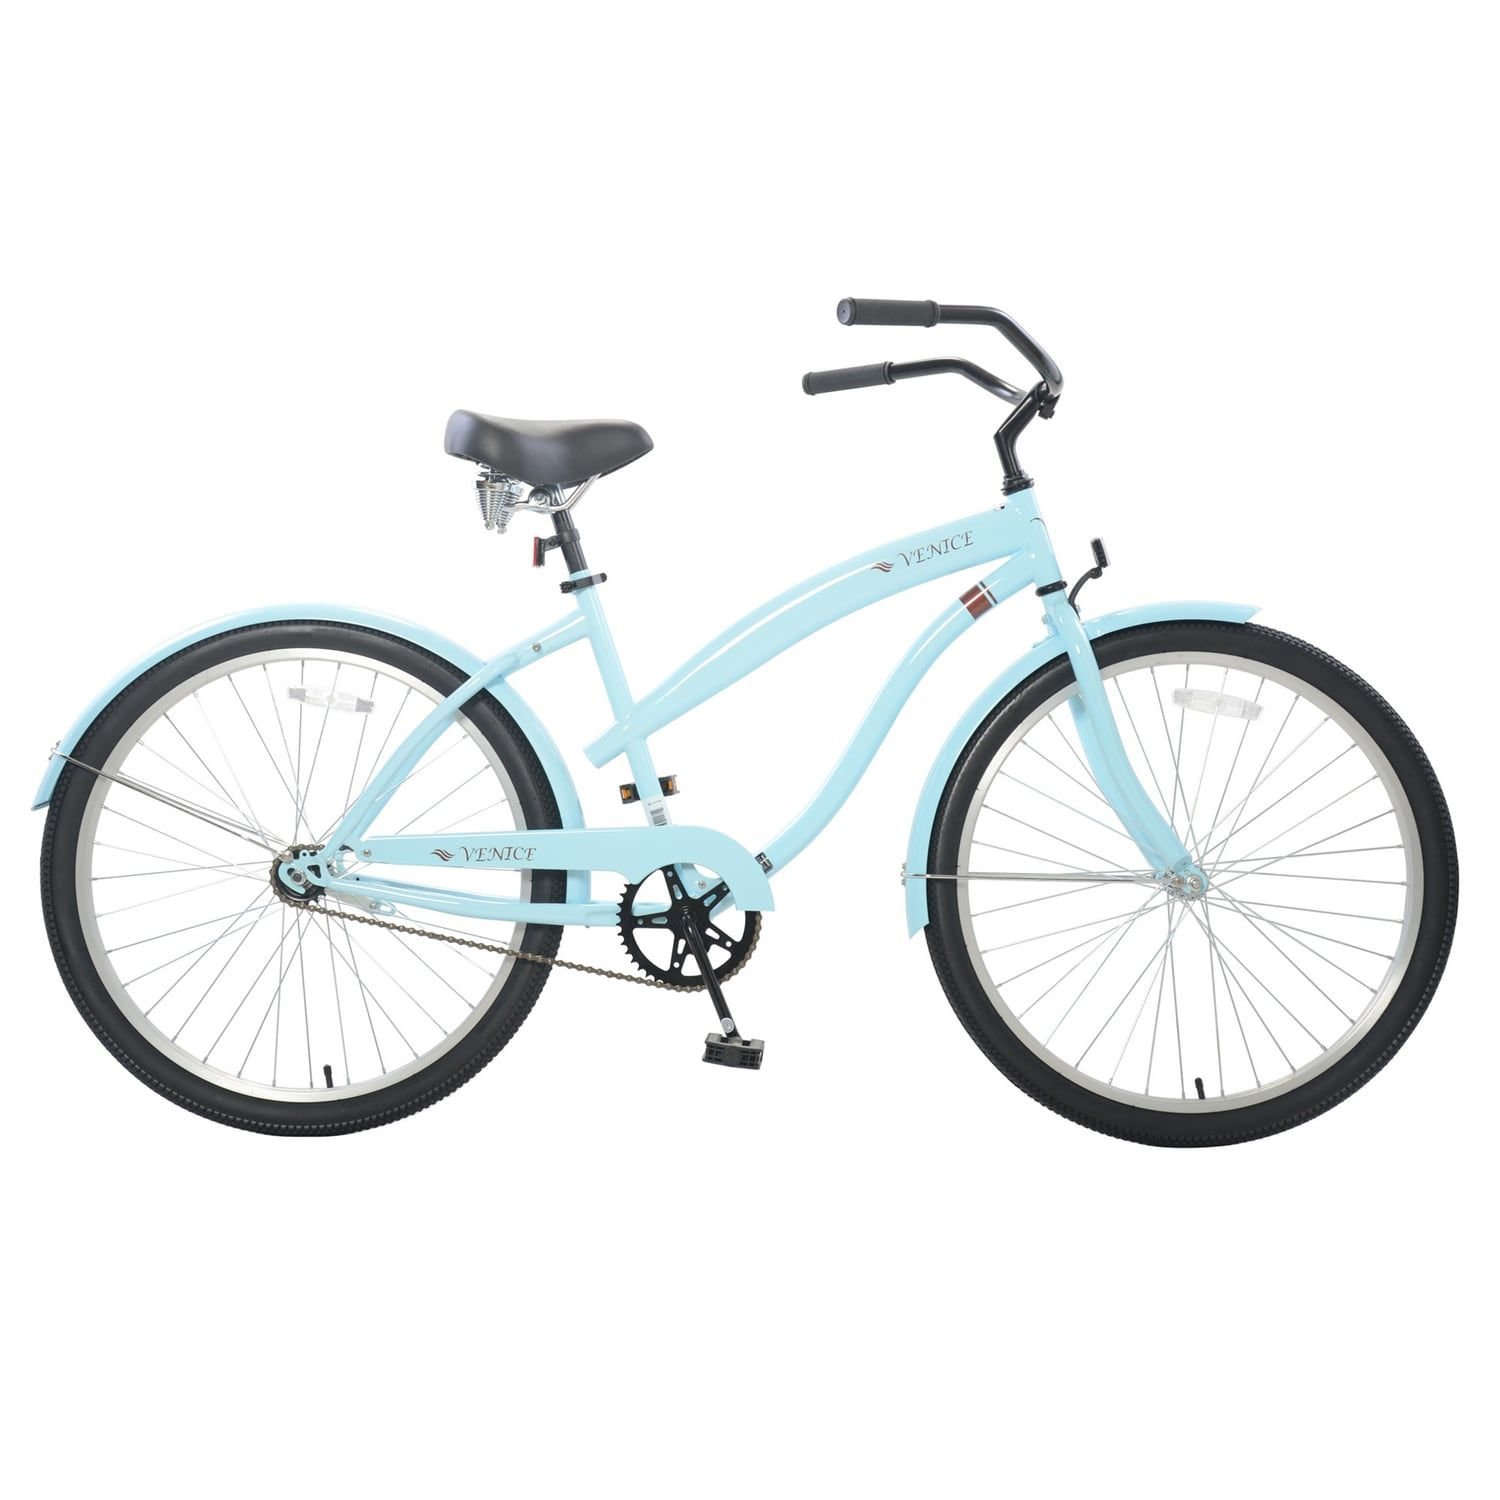 Cycle Force Venice Limited Edition 26 Women S Cruiser Bicycle